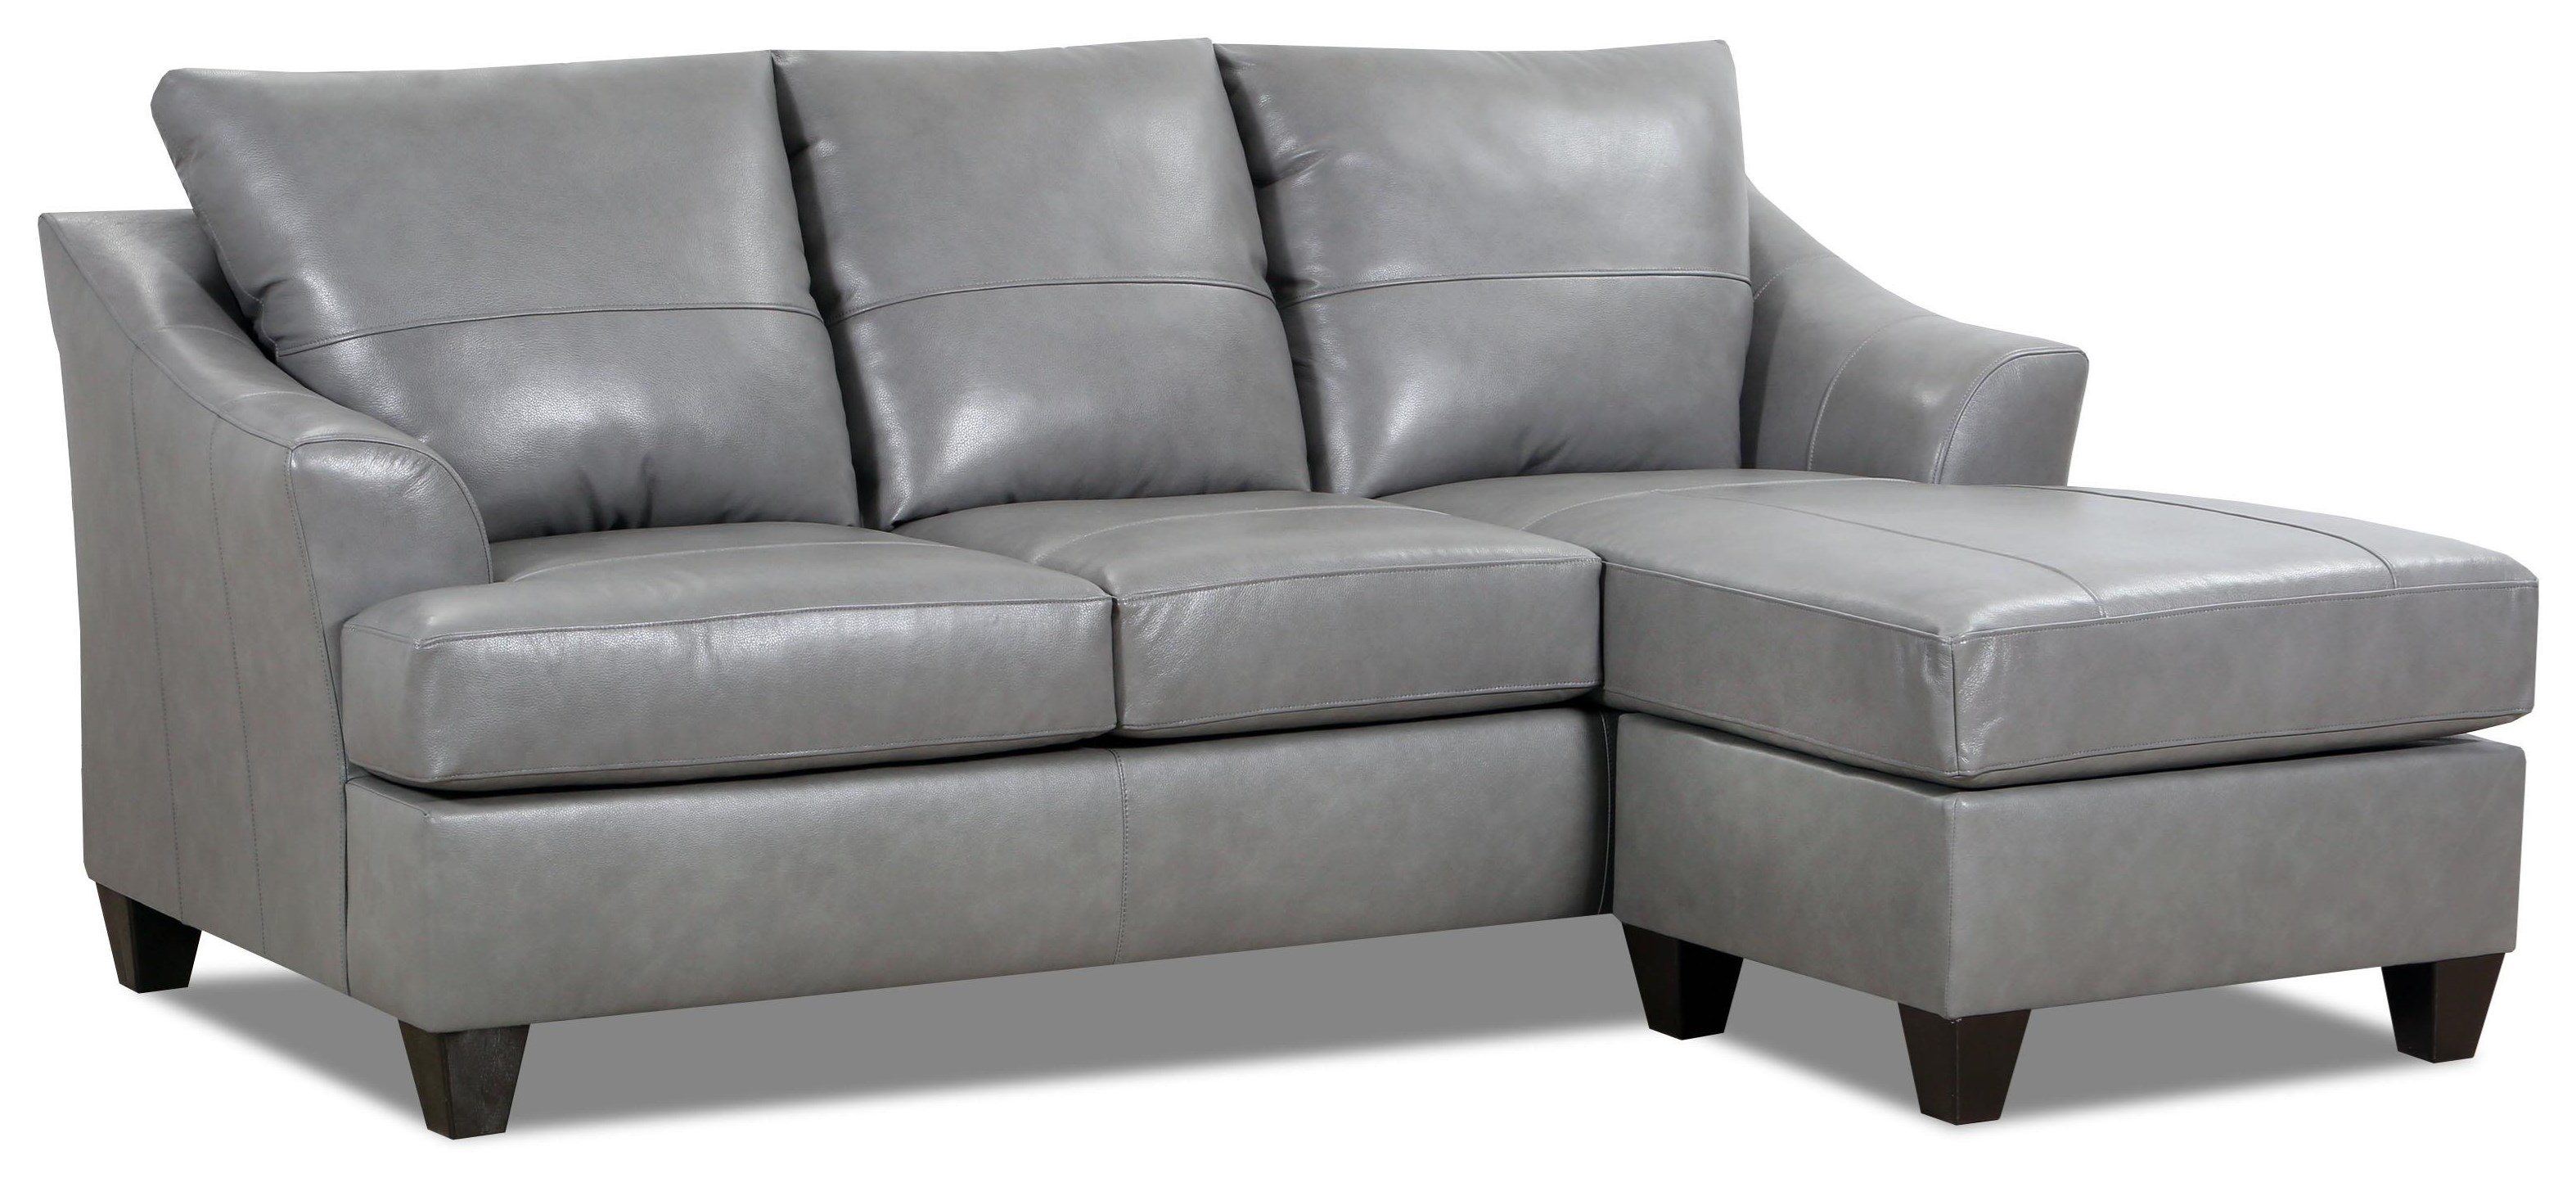 Novaleigh Novaleigh Leather Match Sofa Chaise by Lane at Morris Home